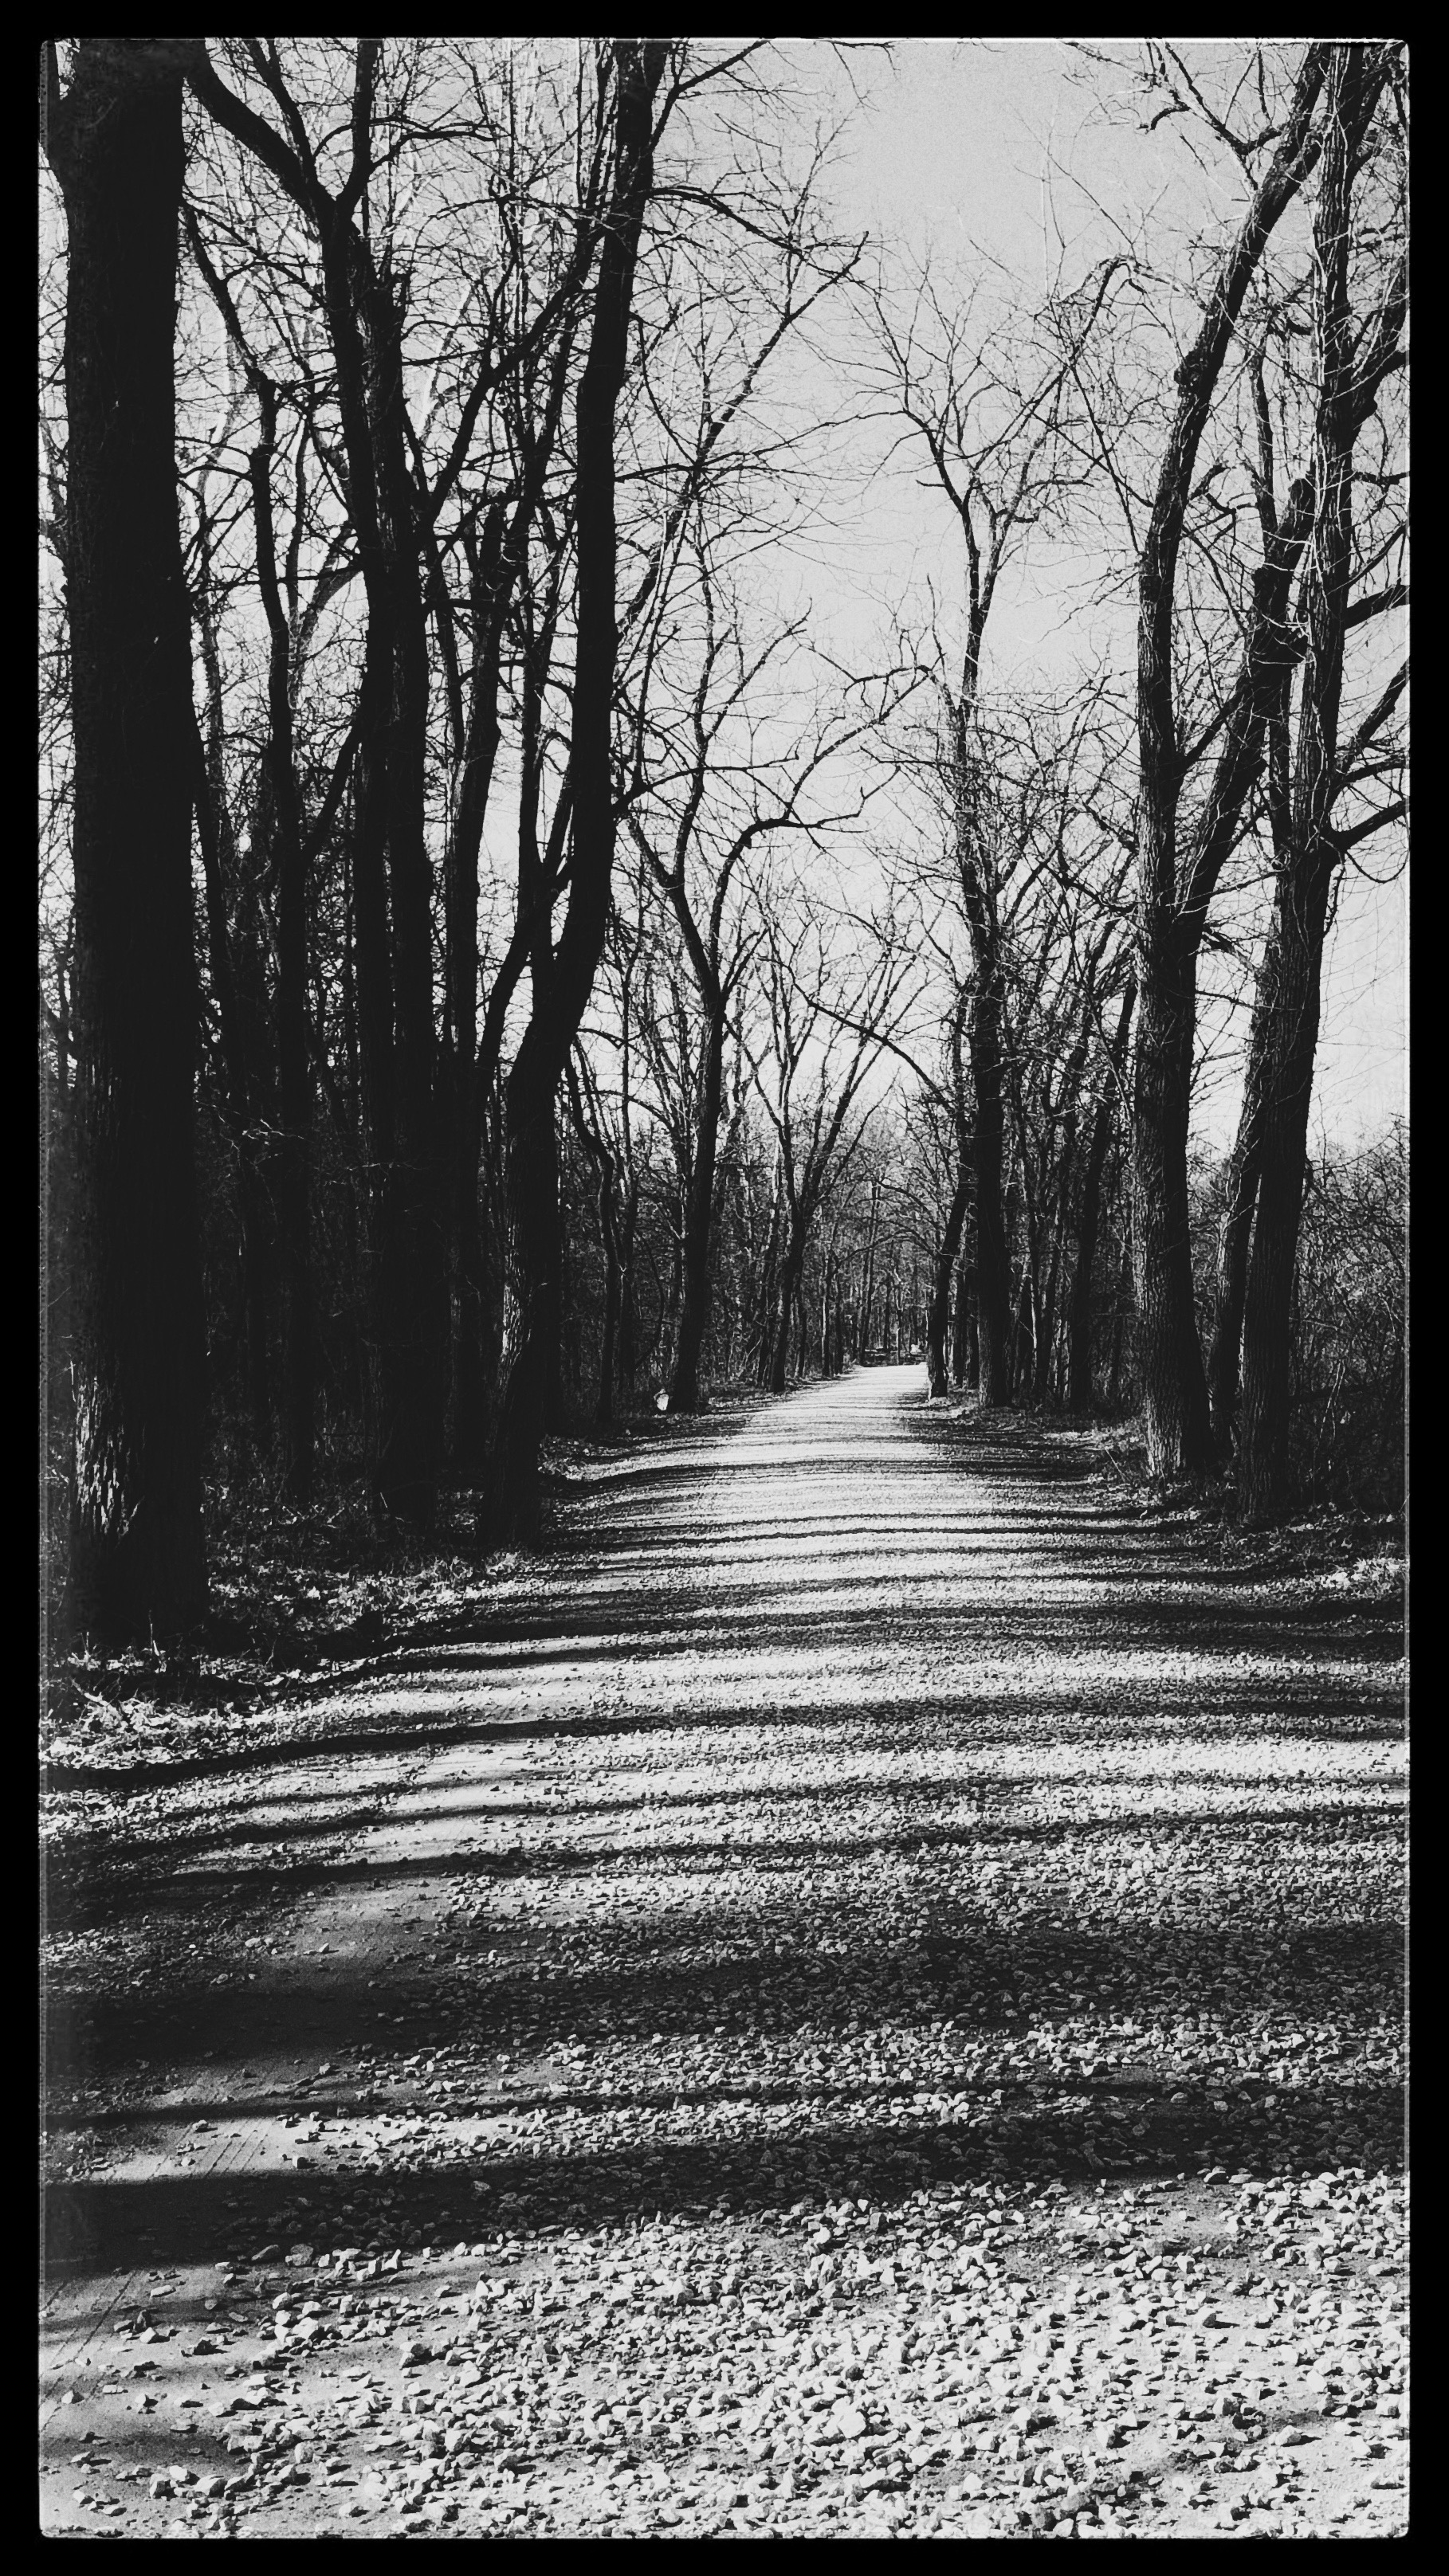 Black And White Image Of a Trail